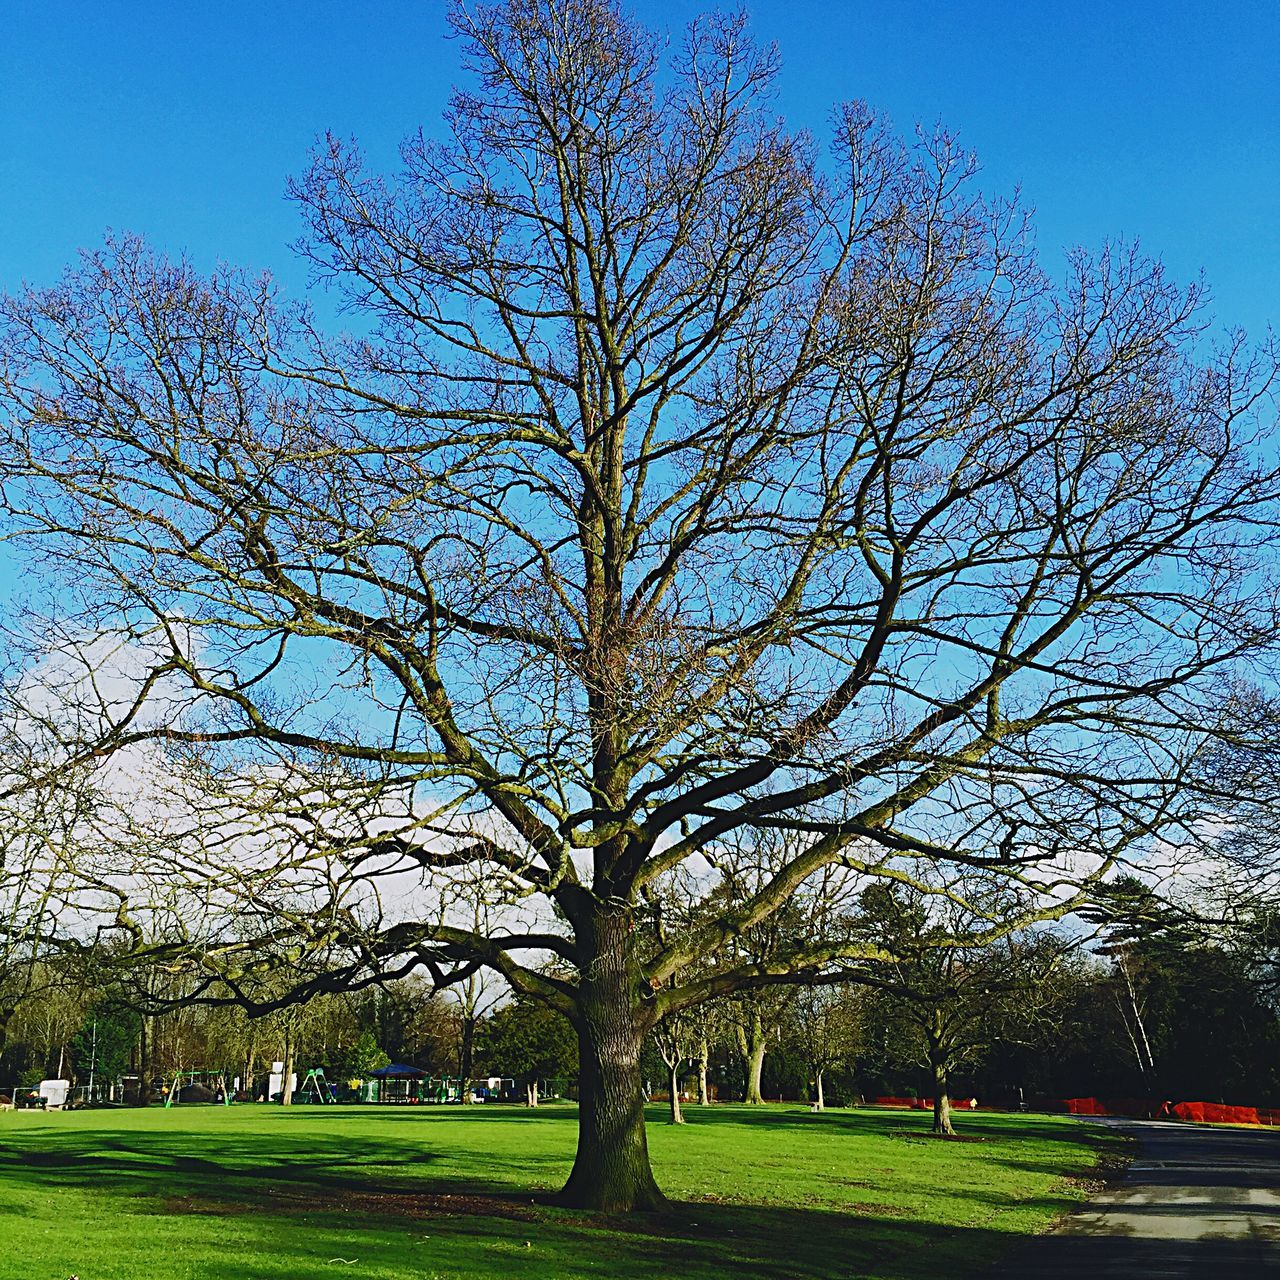 Queens Park Crewe Tree And Sky Tree EyeEm Nature Lover EyeEm Best Shots - Nature Blue Sky Eyeem Crewe Queen's Park Soaking Up The Sun Walking Around Walkingthedog Excercising Beautiful Day Showcase: February